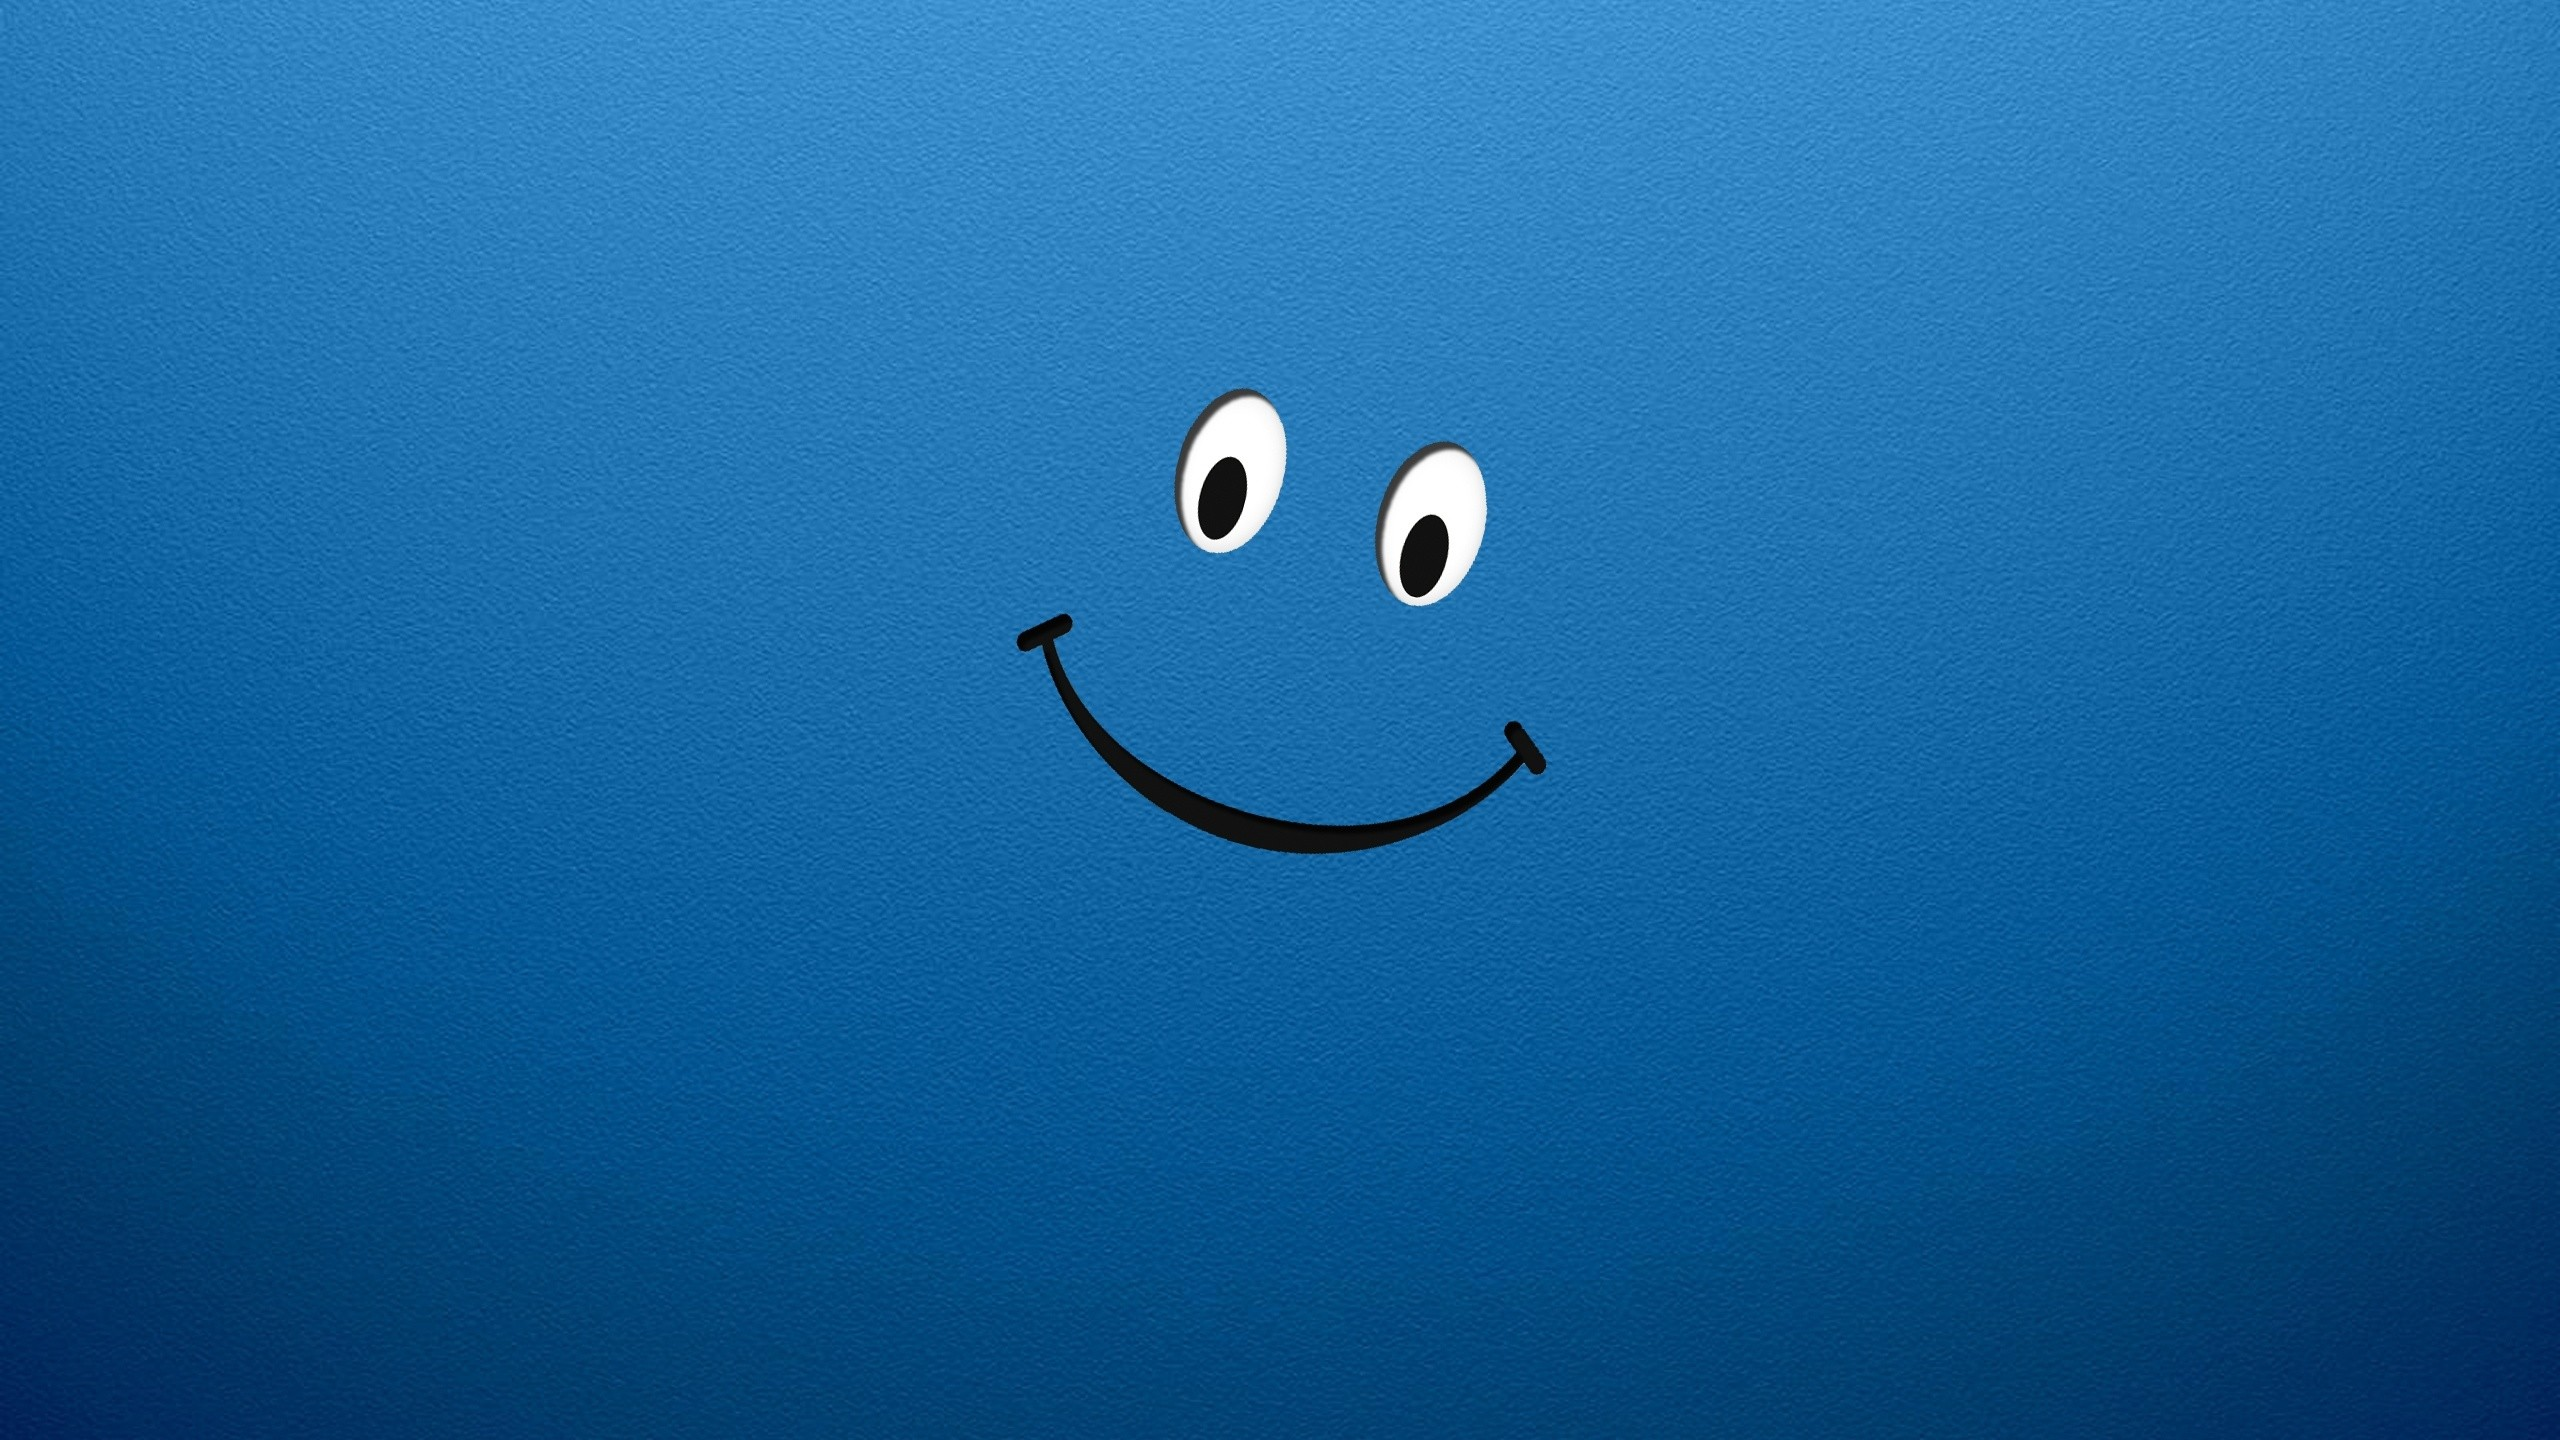 Smiley Face Blue Hd Wallpapers Desktop Background